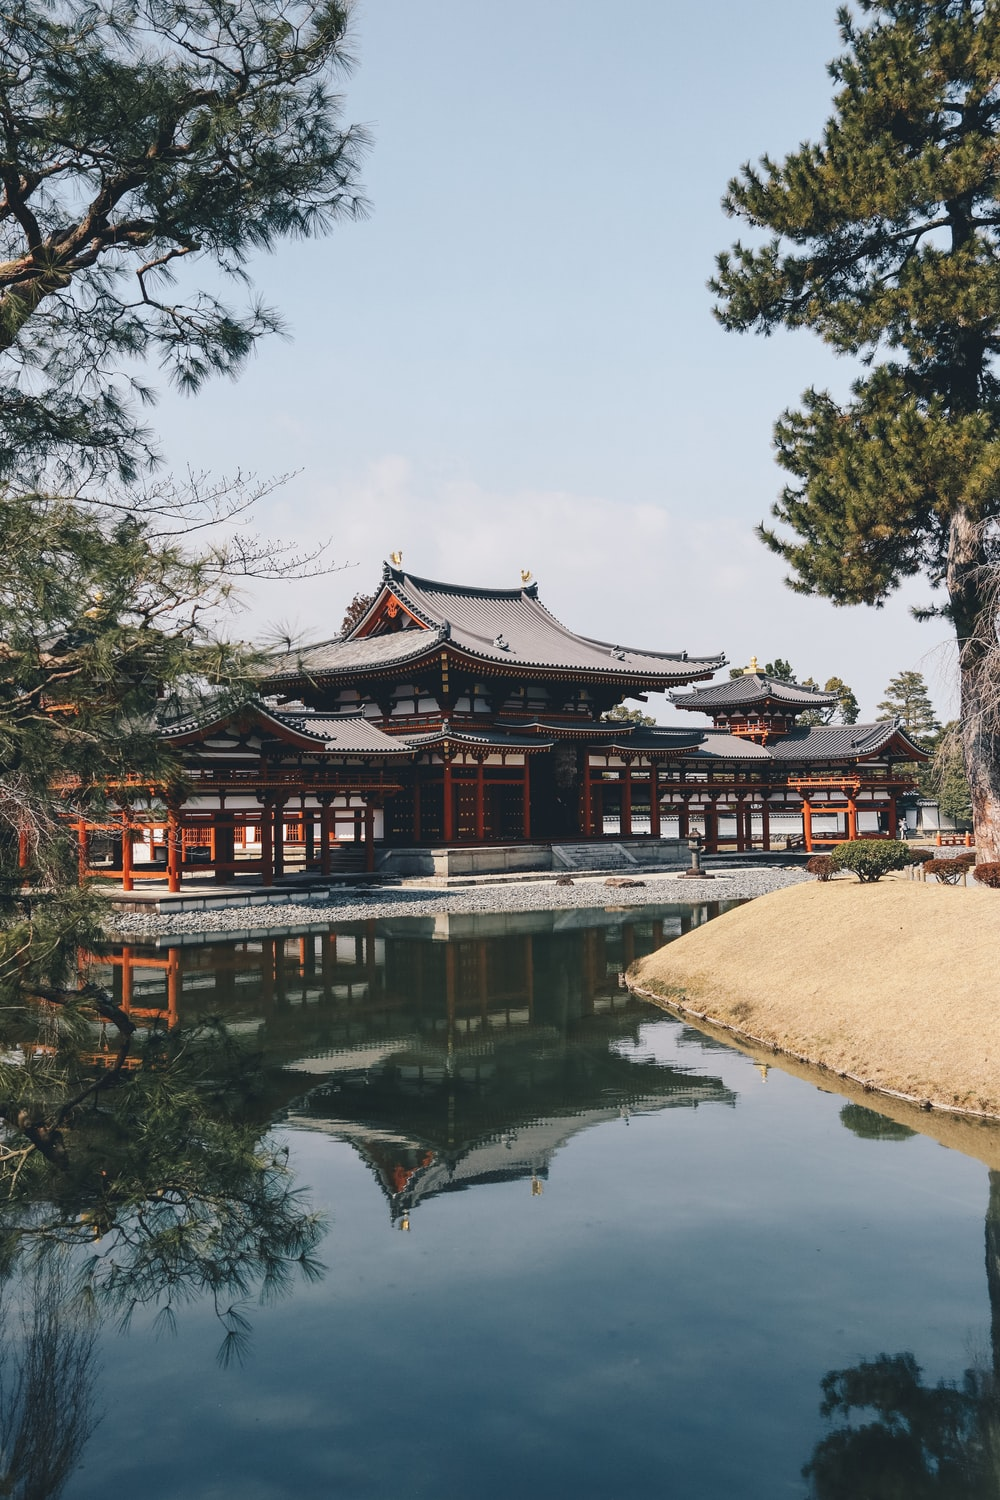 temple in front of calm body of water